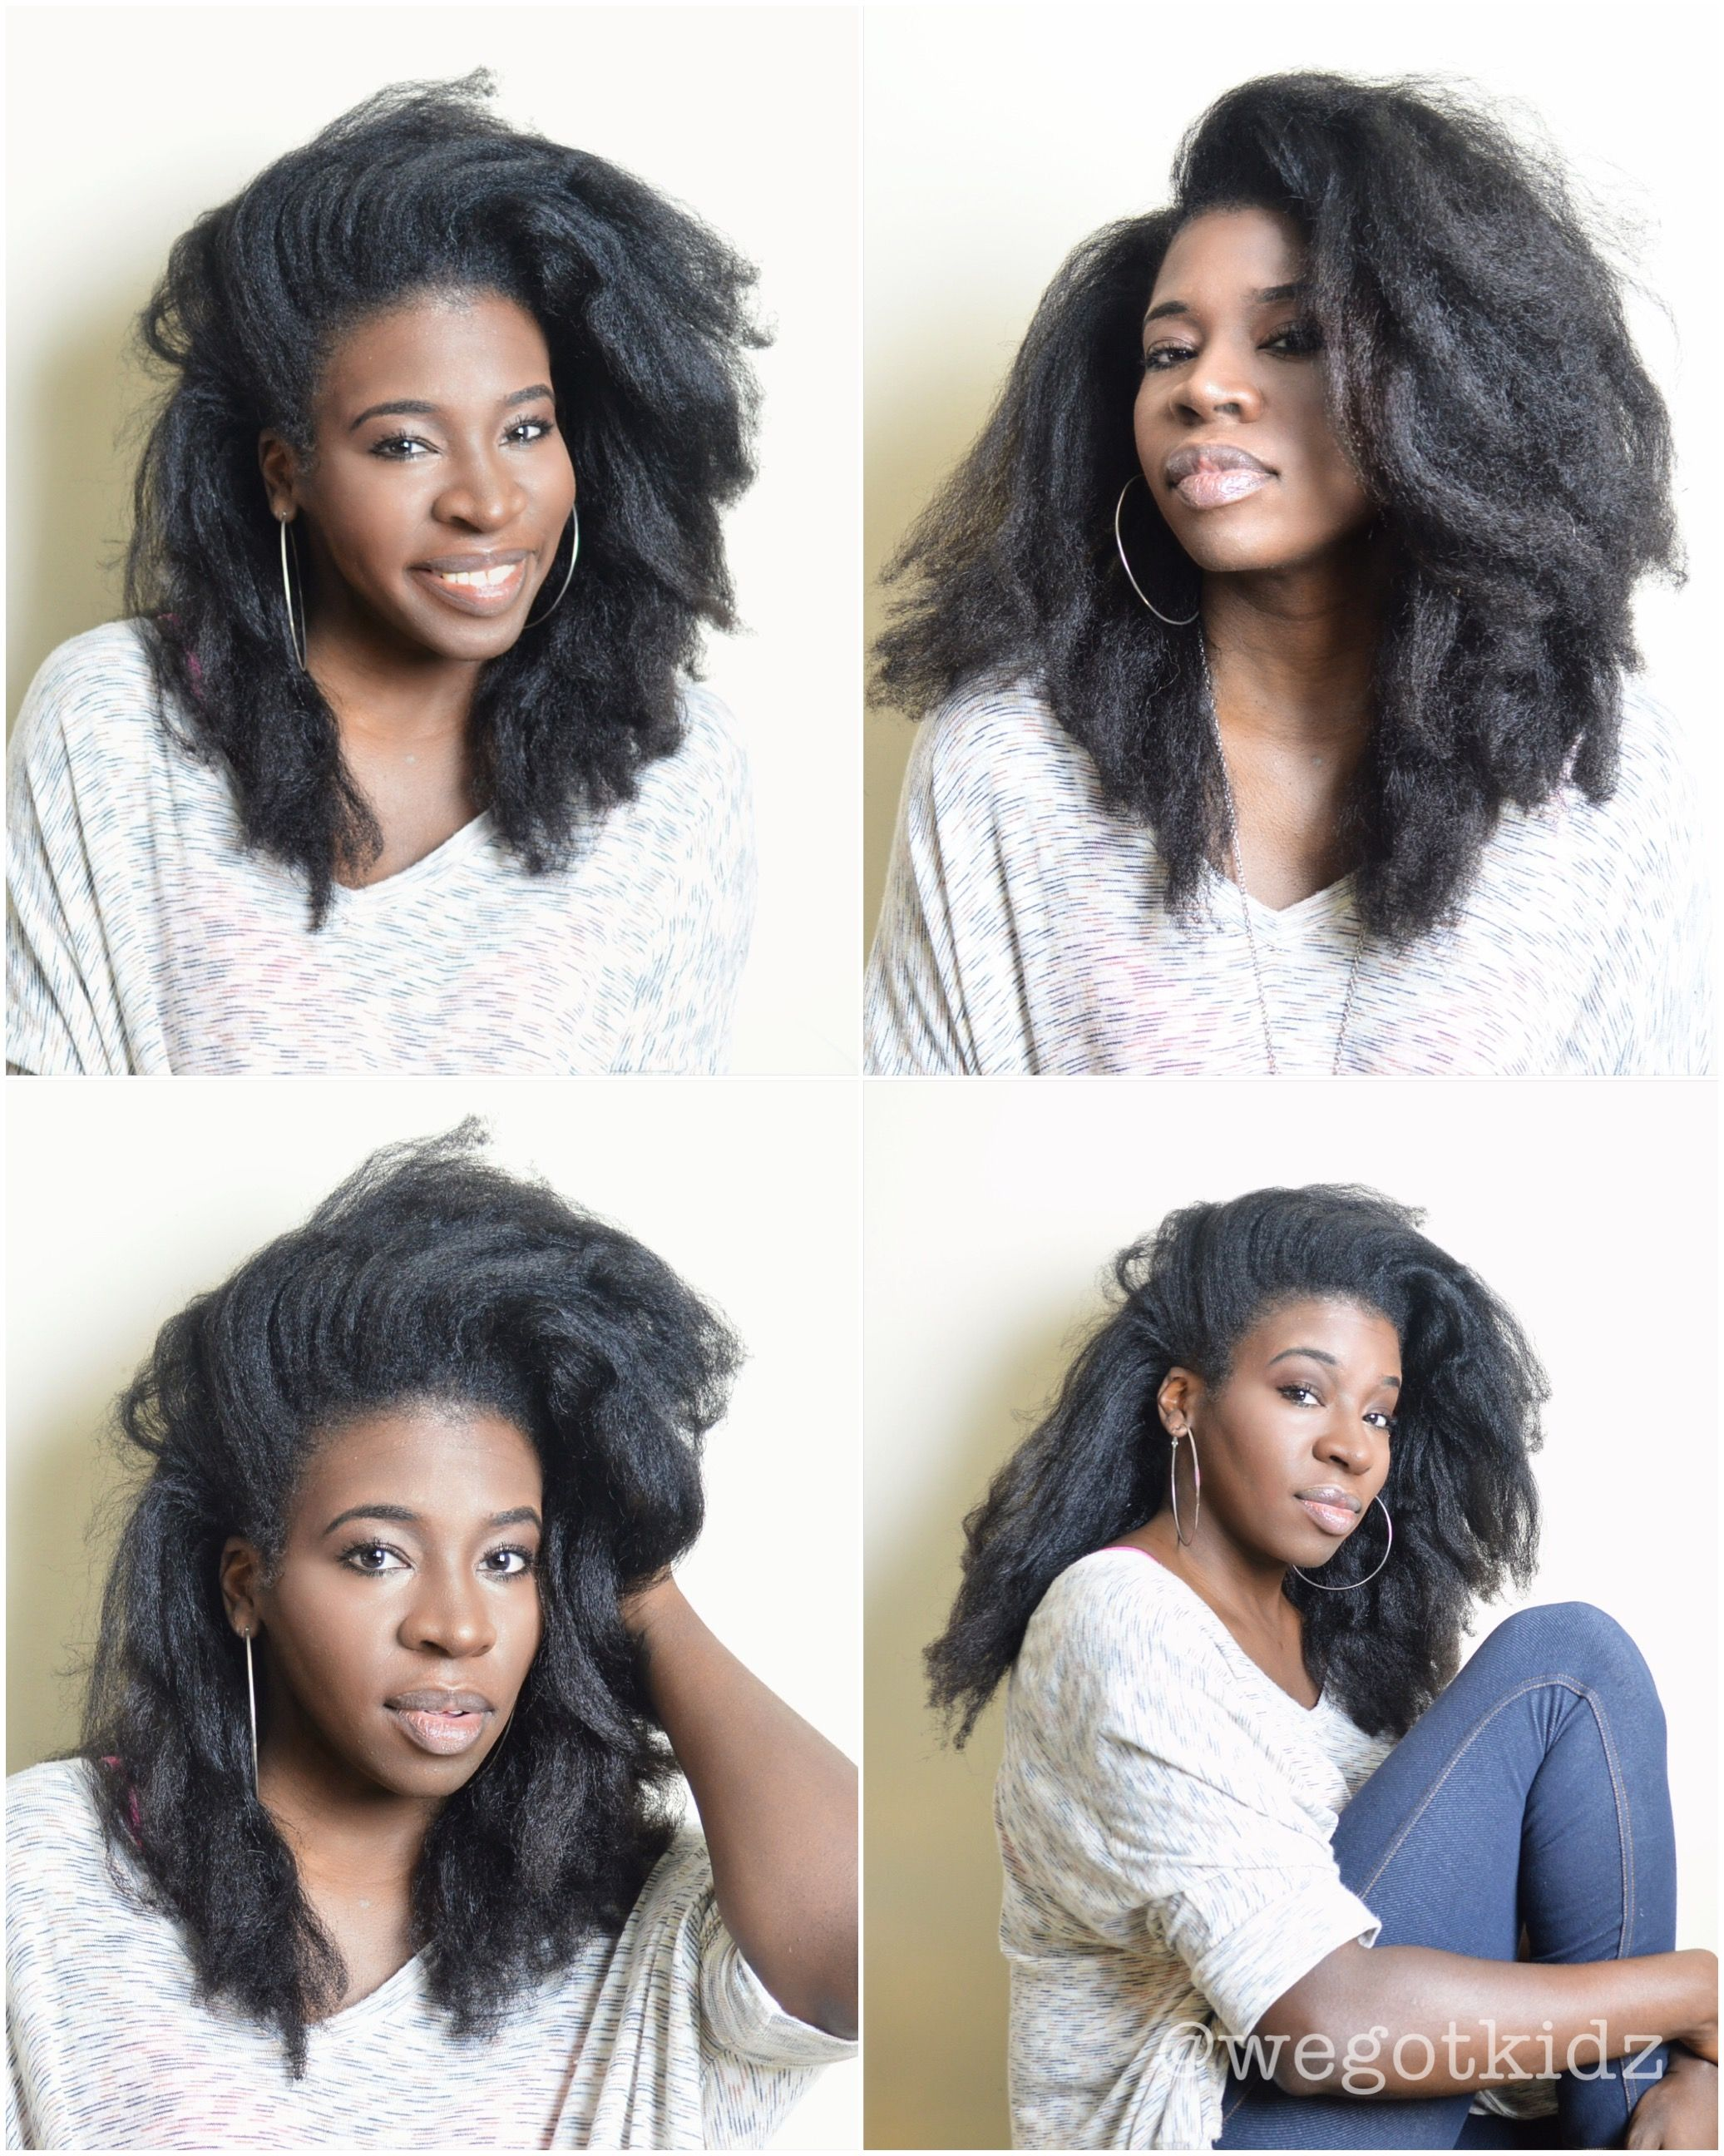 Naturalhair Crush 4c Hair Blow Dried Using The Tension Method And Then Flat Ironed One Pass Medium Heat Natural Hair Blowout Hair Styles Blowout Hair